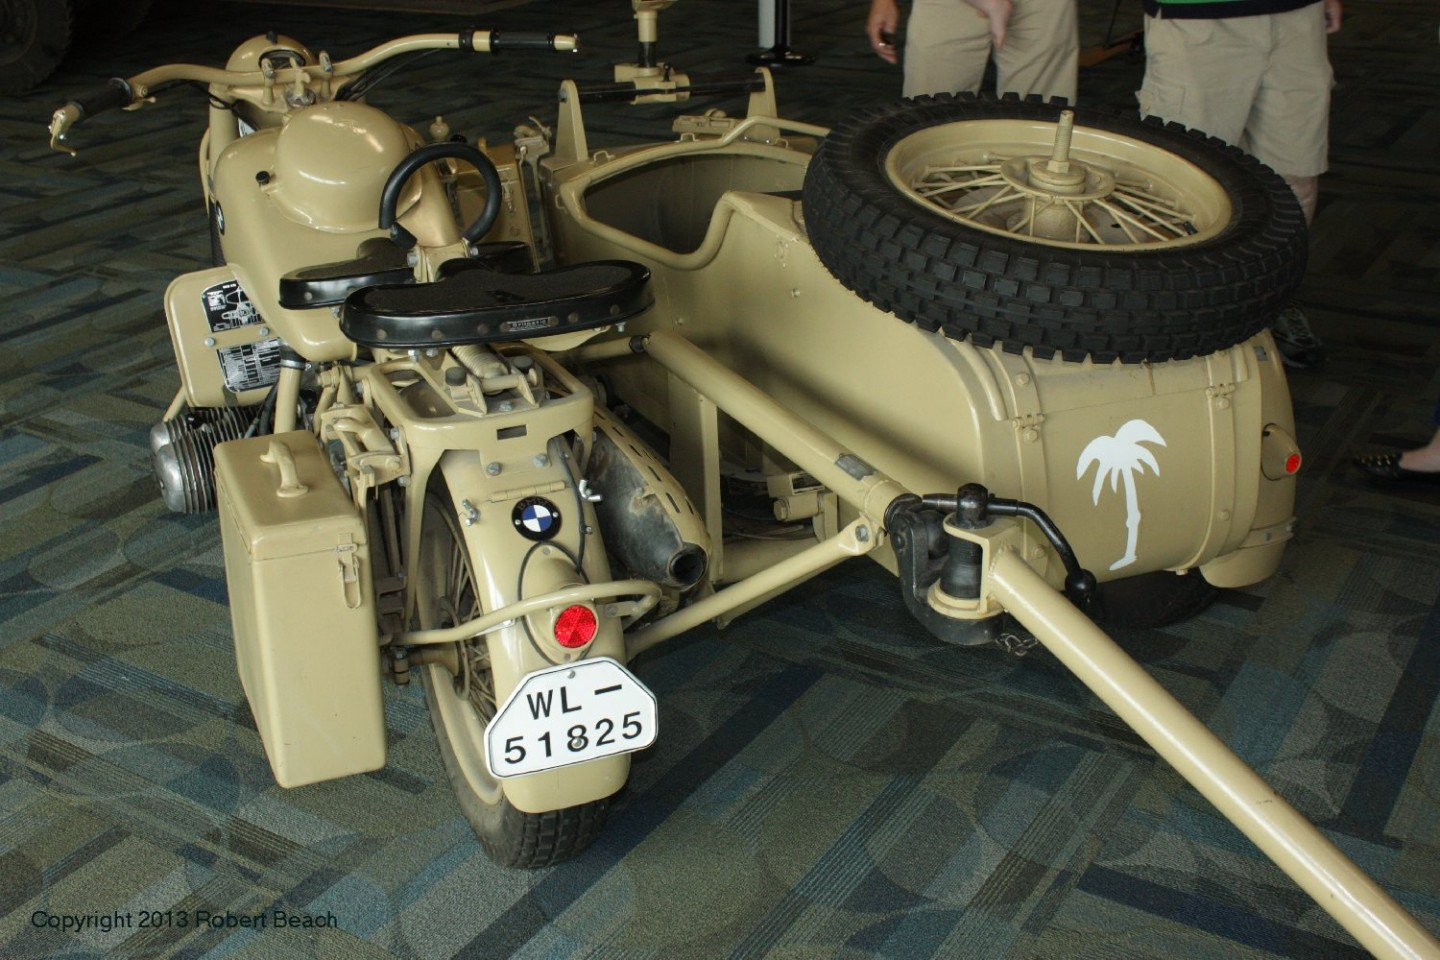 BMW_Mtrcycle_sidecar_frm left rear